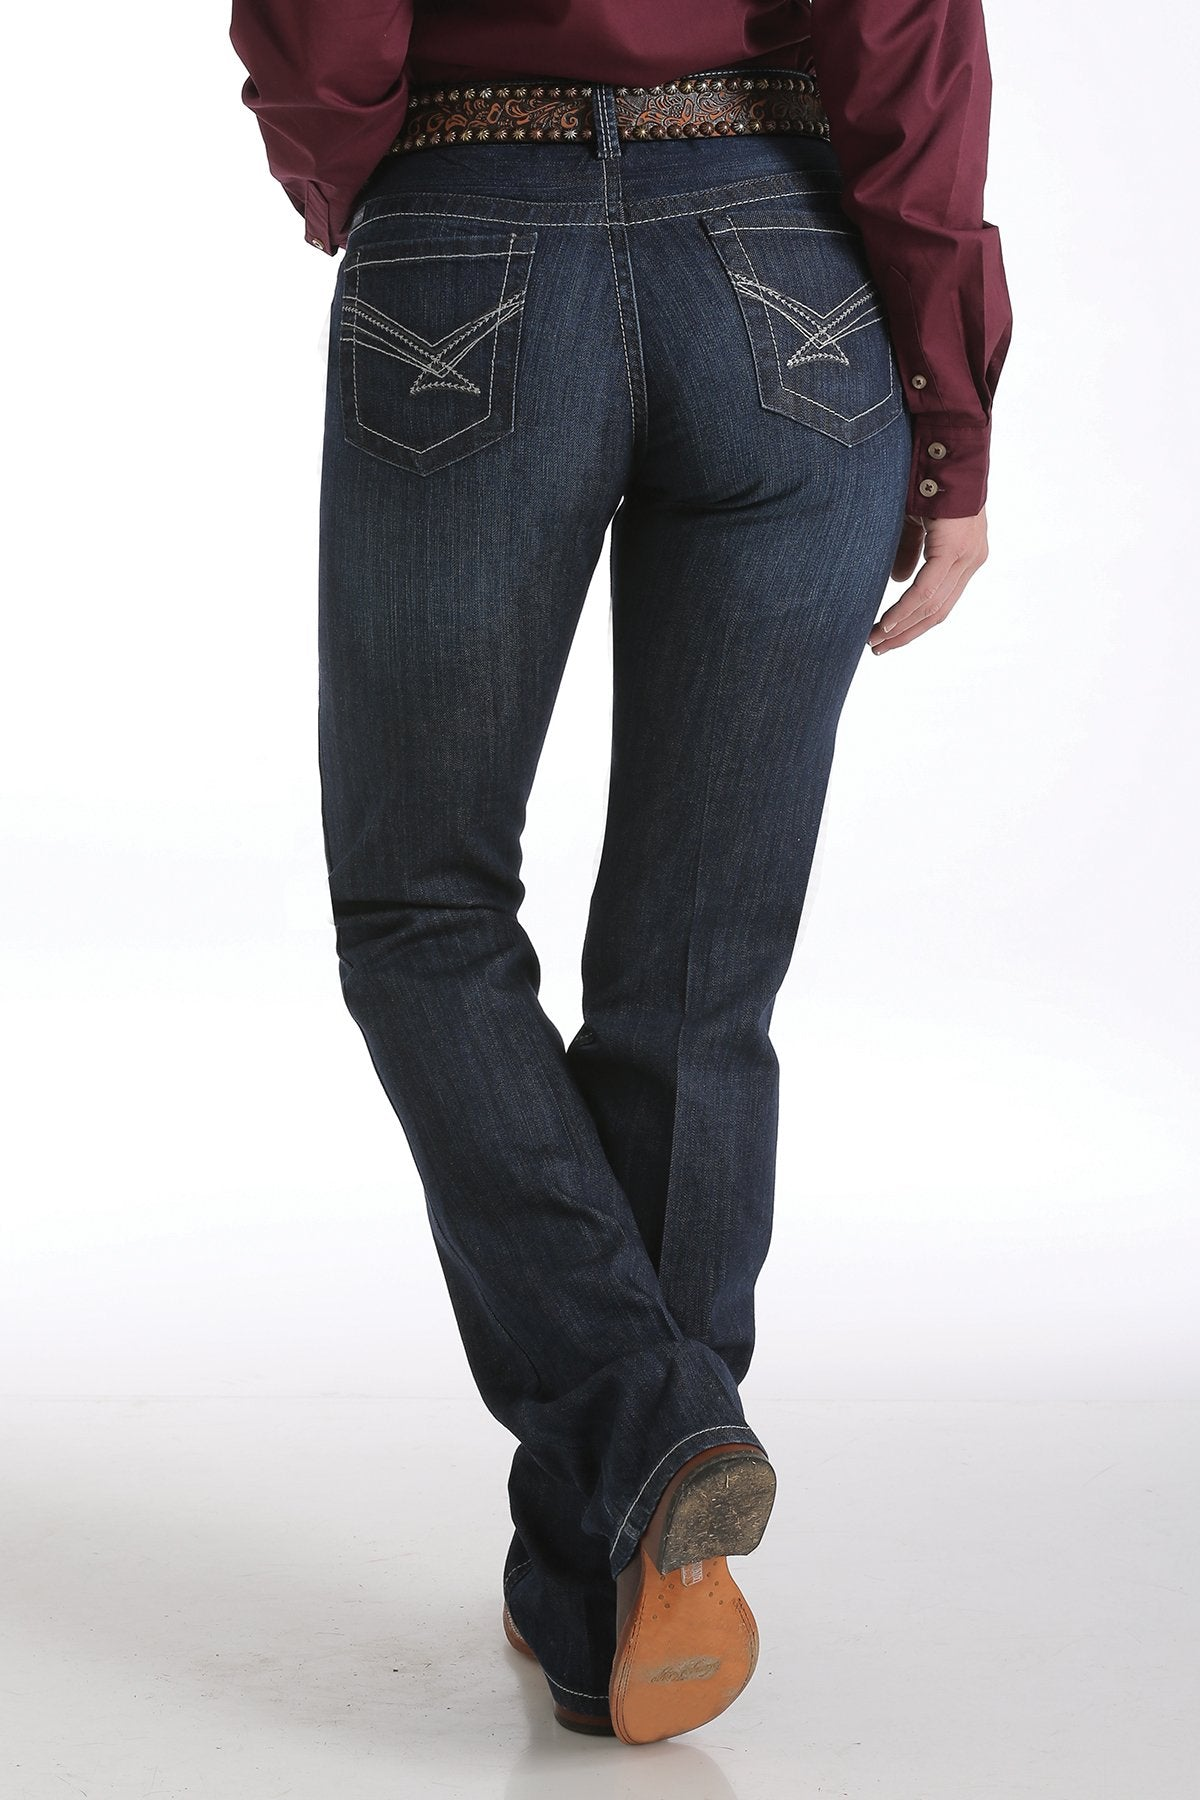 Cinch Ada Arena Ladies Jeans Sheps Outfitters